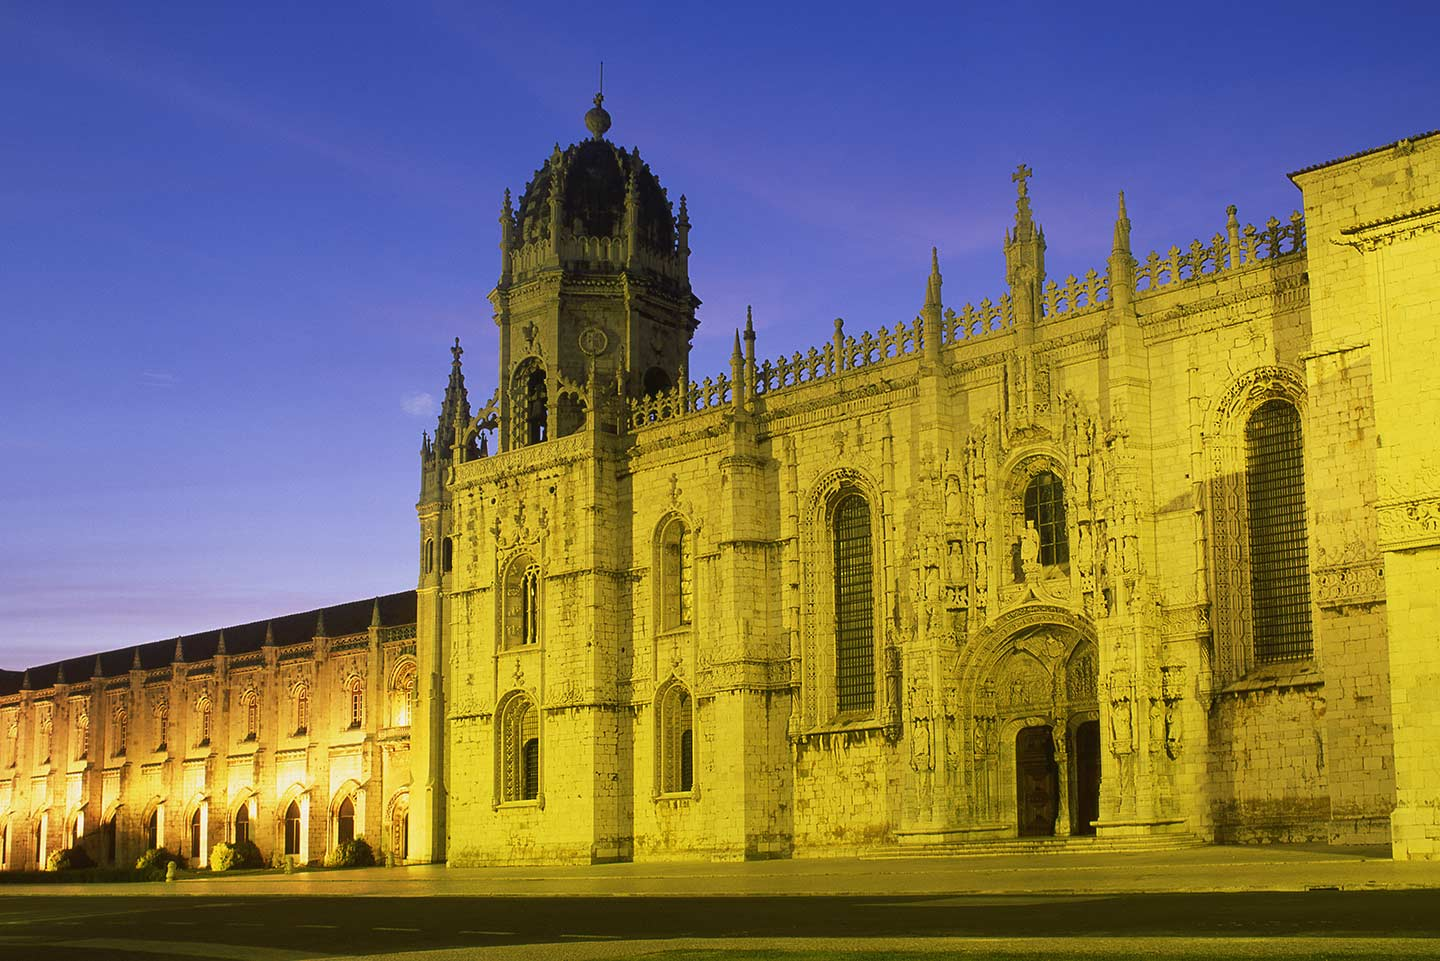 What to see in Portugal Image of the Jeronimos Monastery, or Mosteiro dos Jeronimos, in Belem